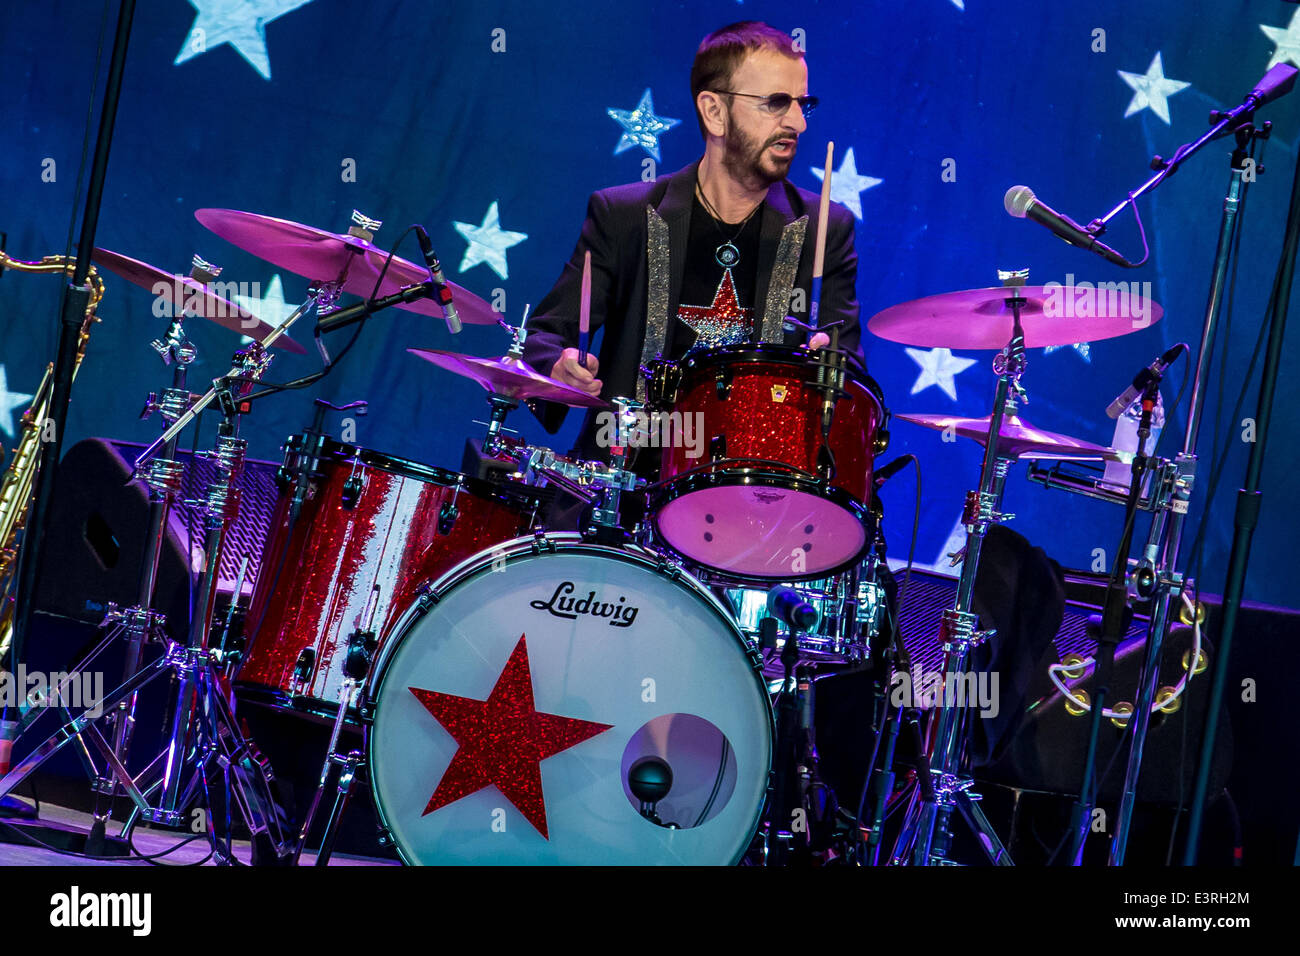 27th June 2014 RINGO STARR And His All